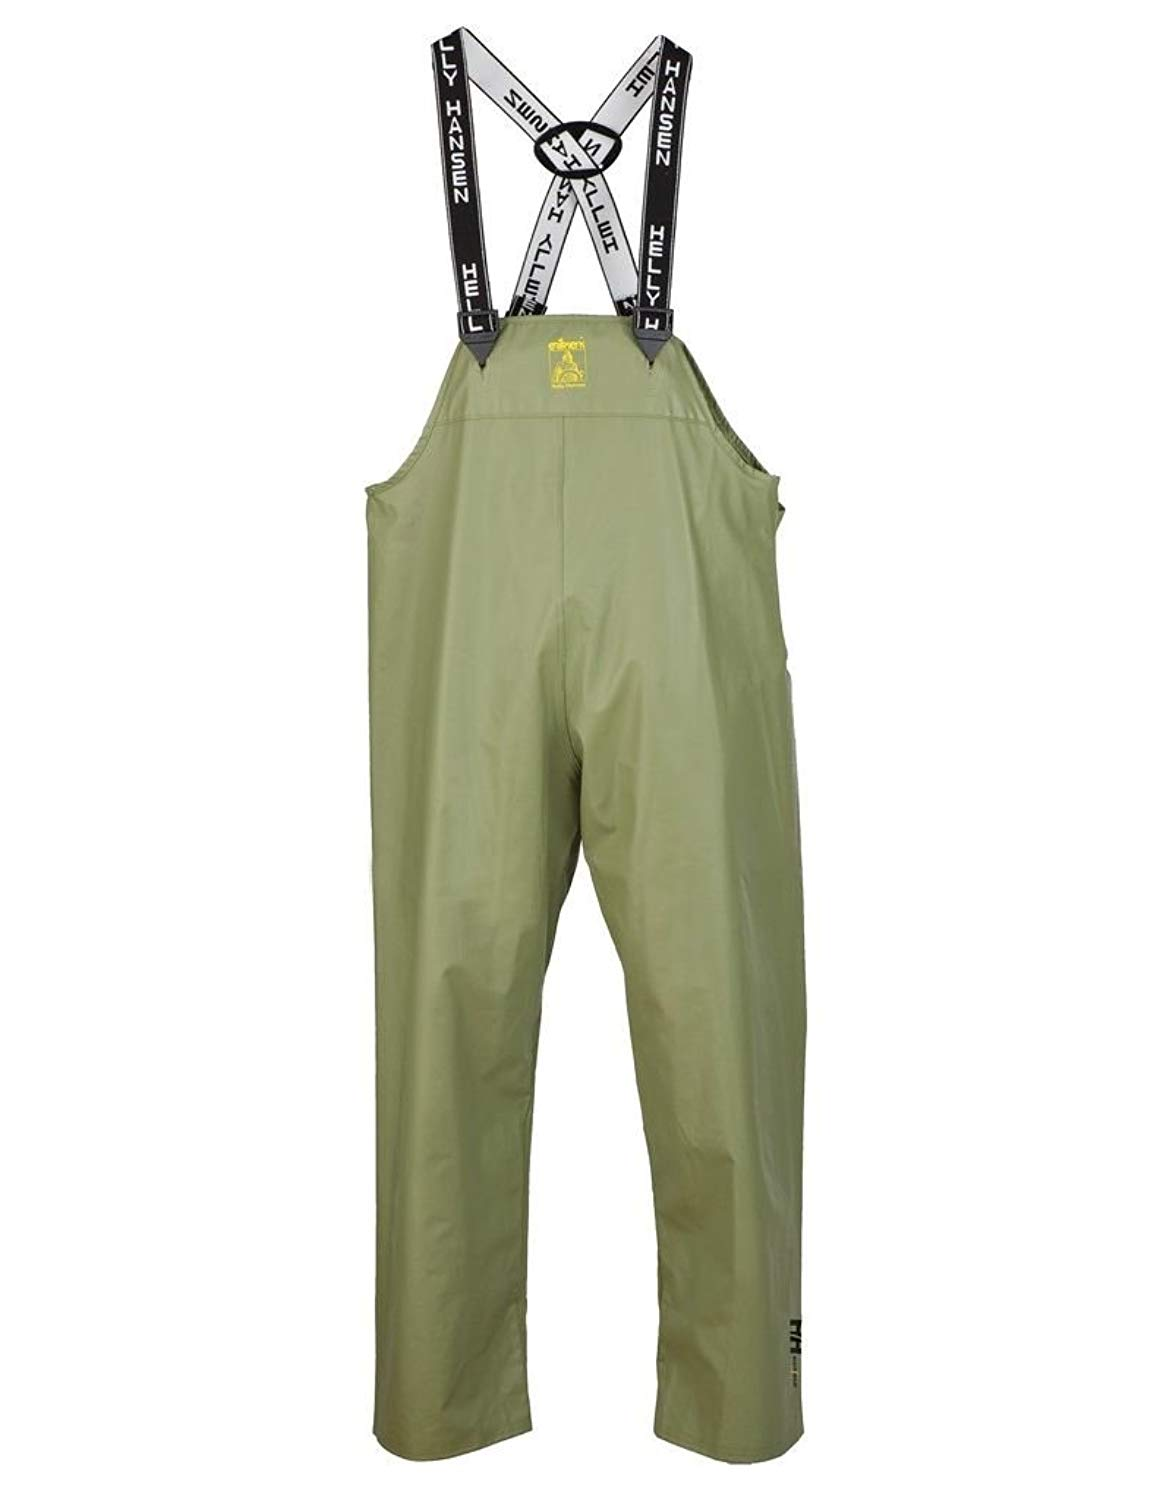 a45264722f44 Get Quotations · Helly Hansen Work Overalls Mens Engram Double PVC Coated  Cotton 70124